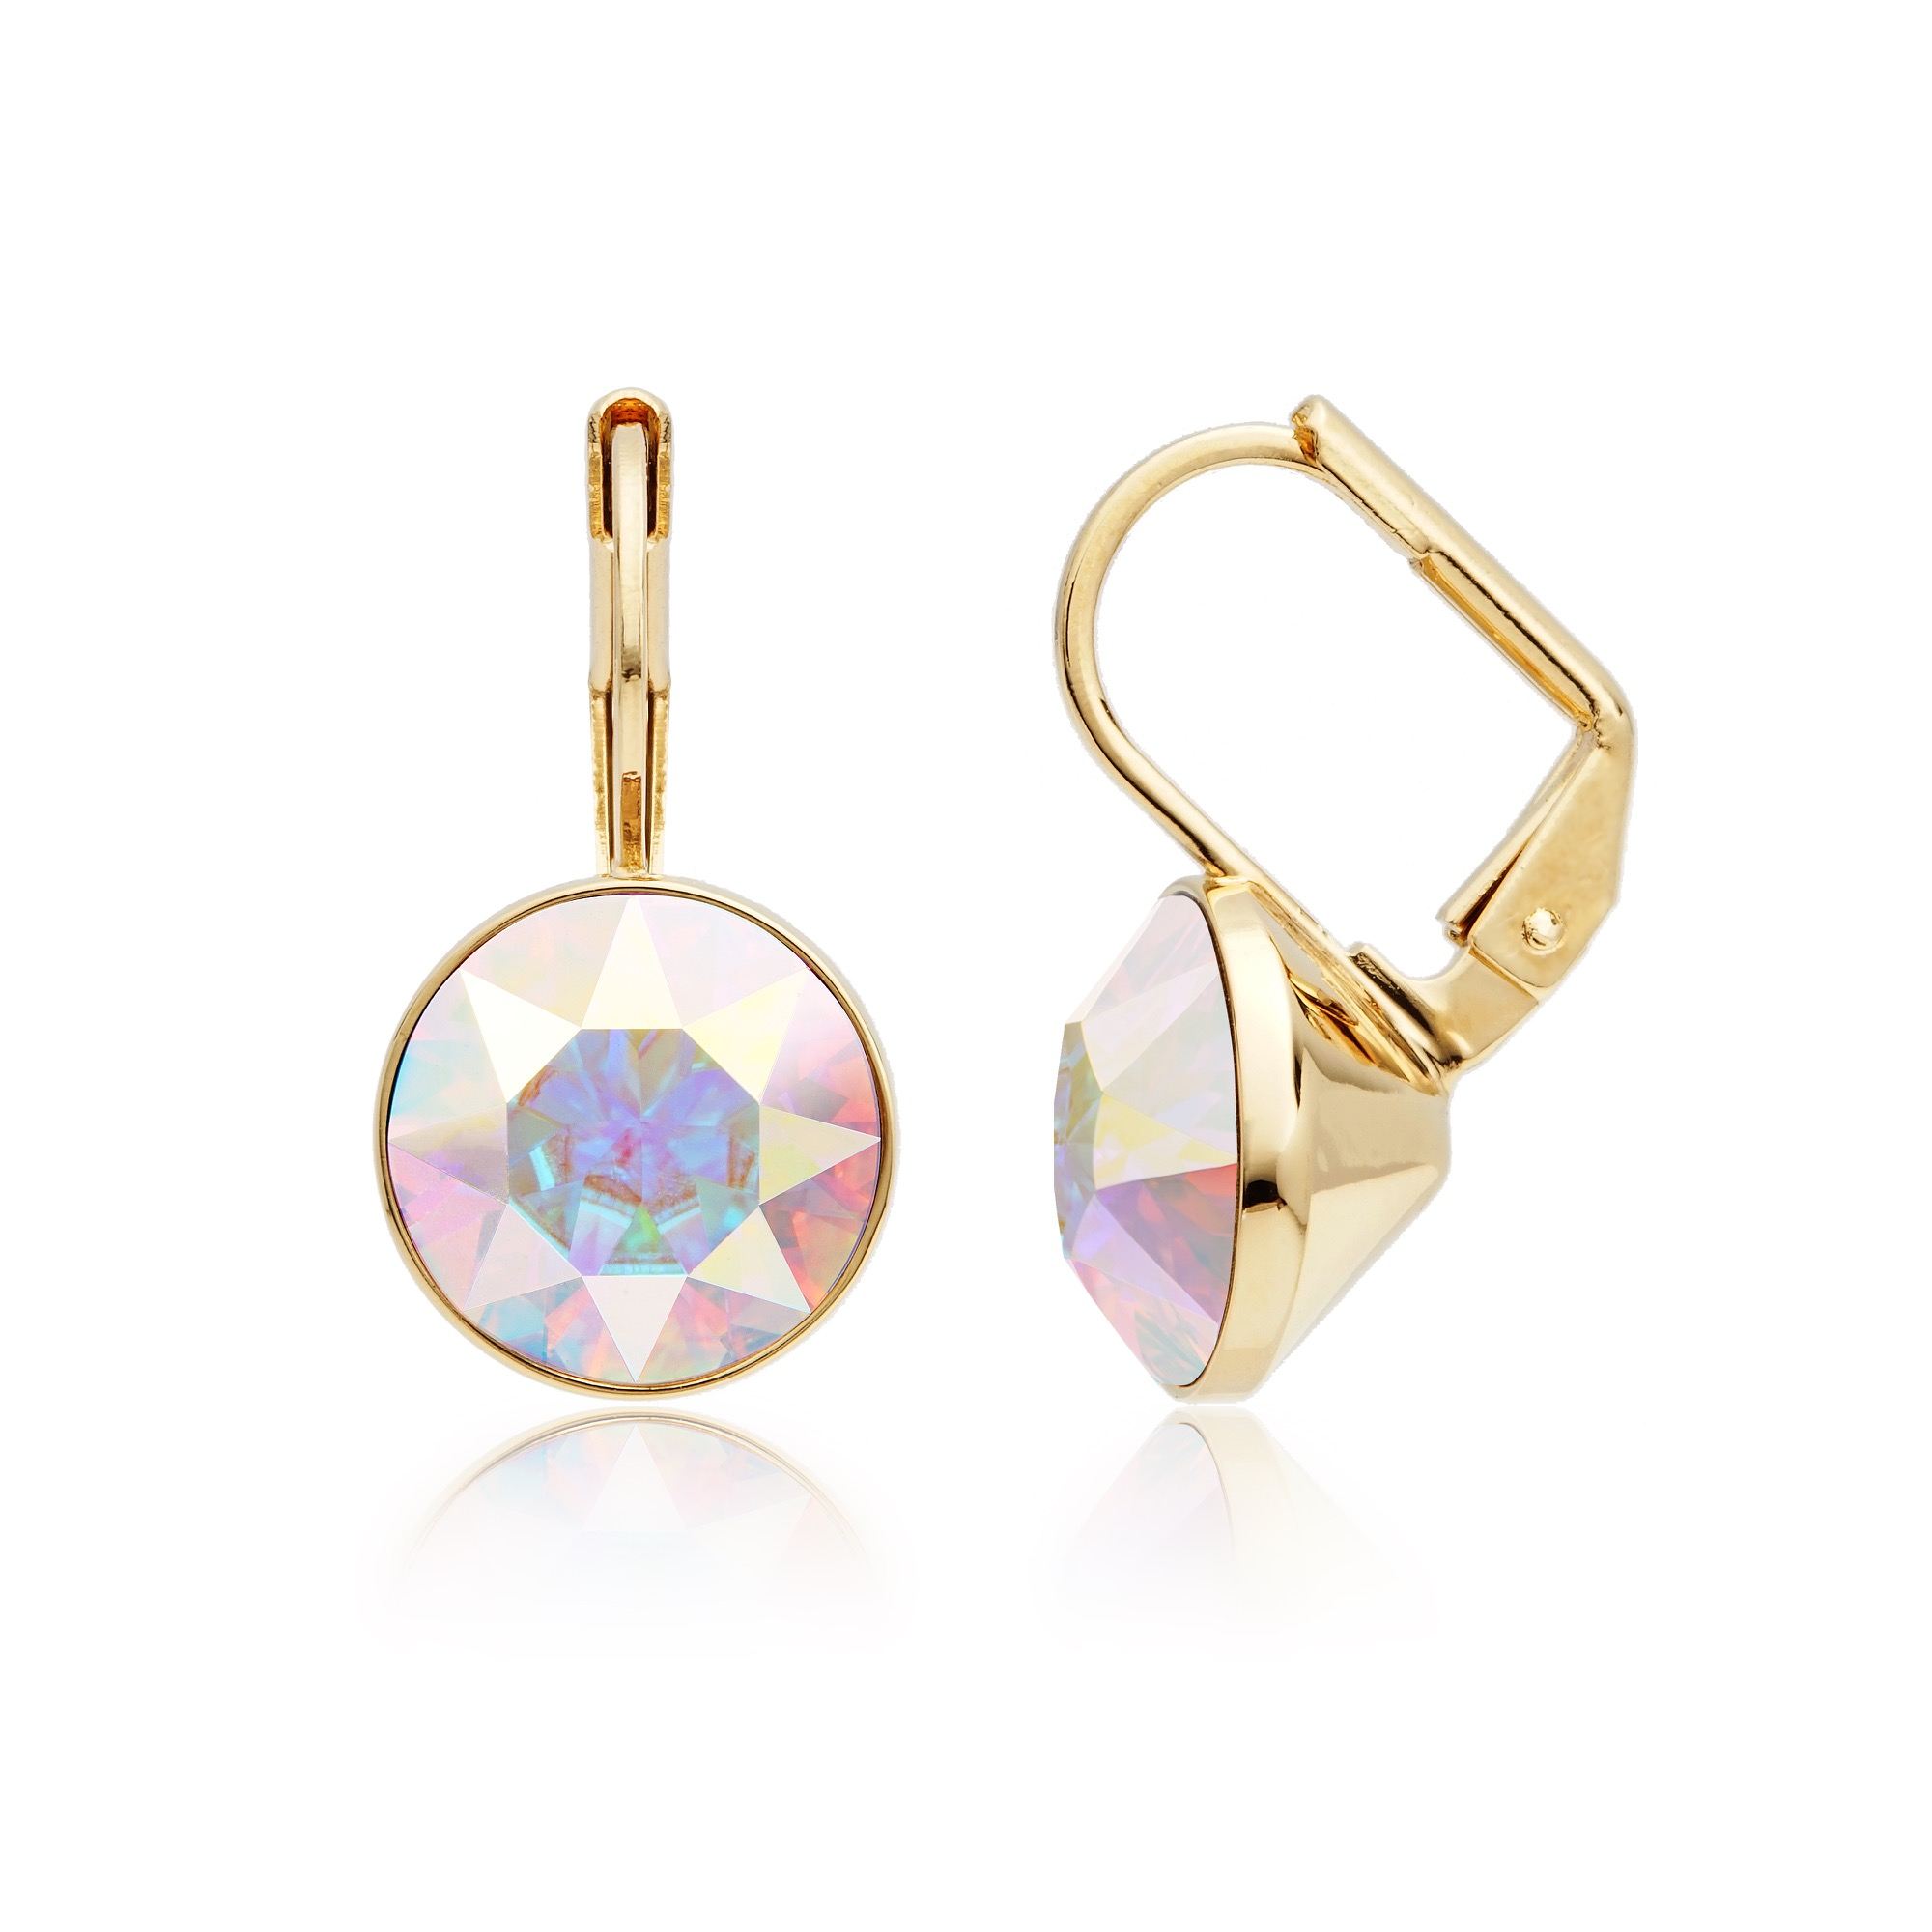 Bella Earrings With 4 Carat Aurora Borealis Crystals Gold Plated